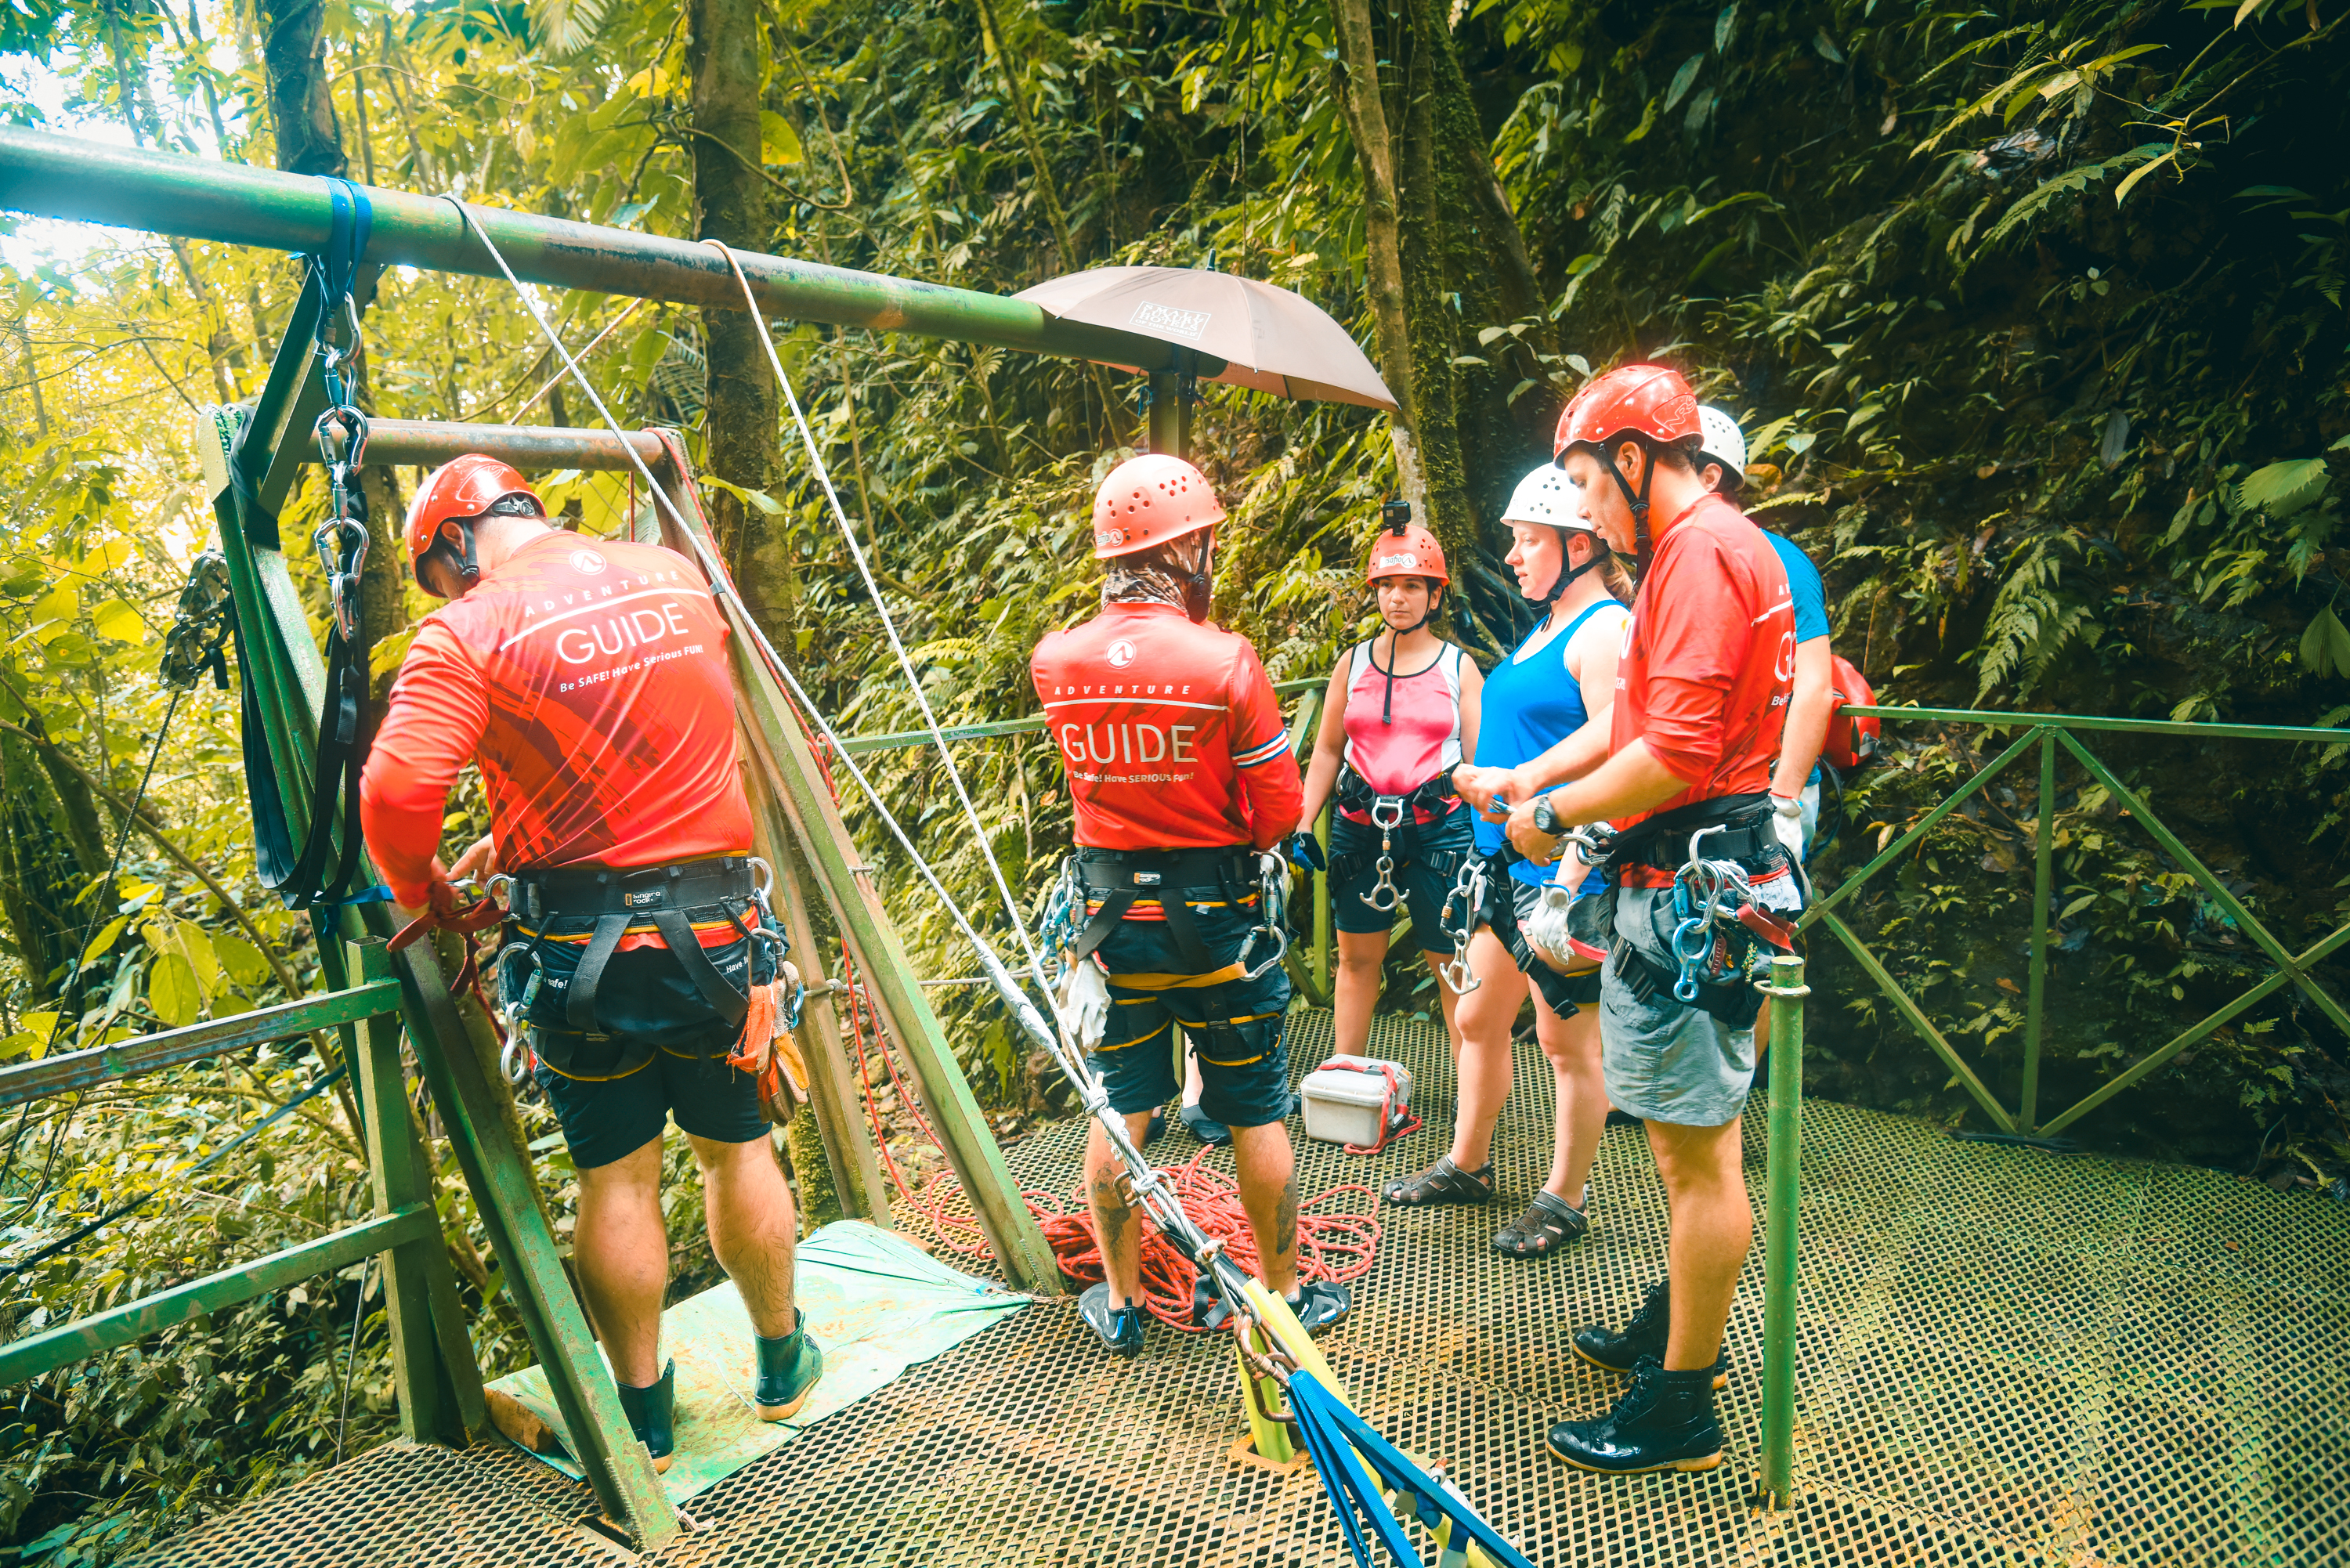 Let the adventure in Desafio canyoning begin!